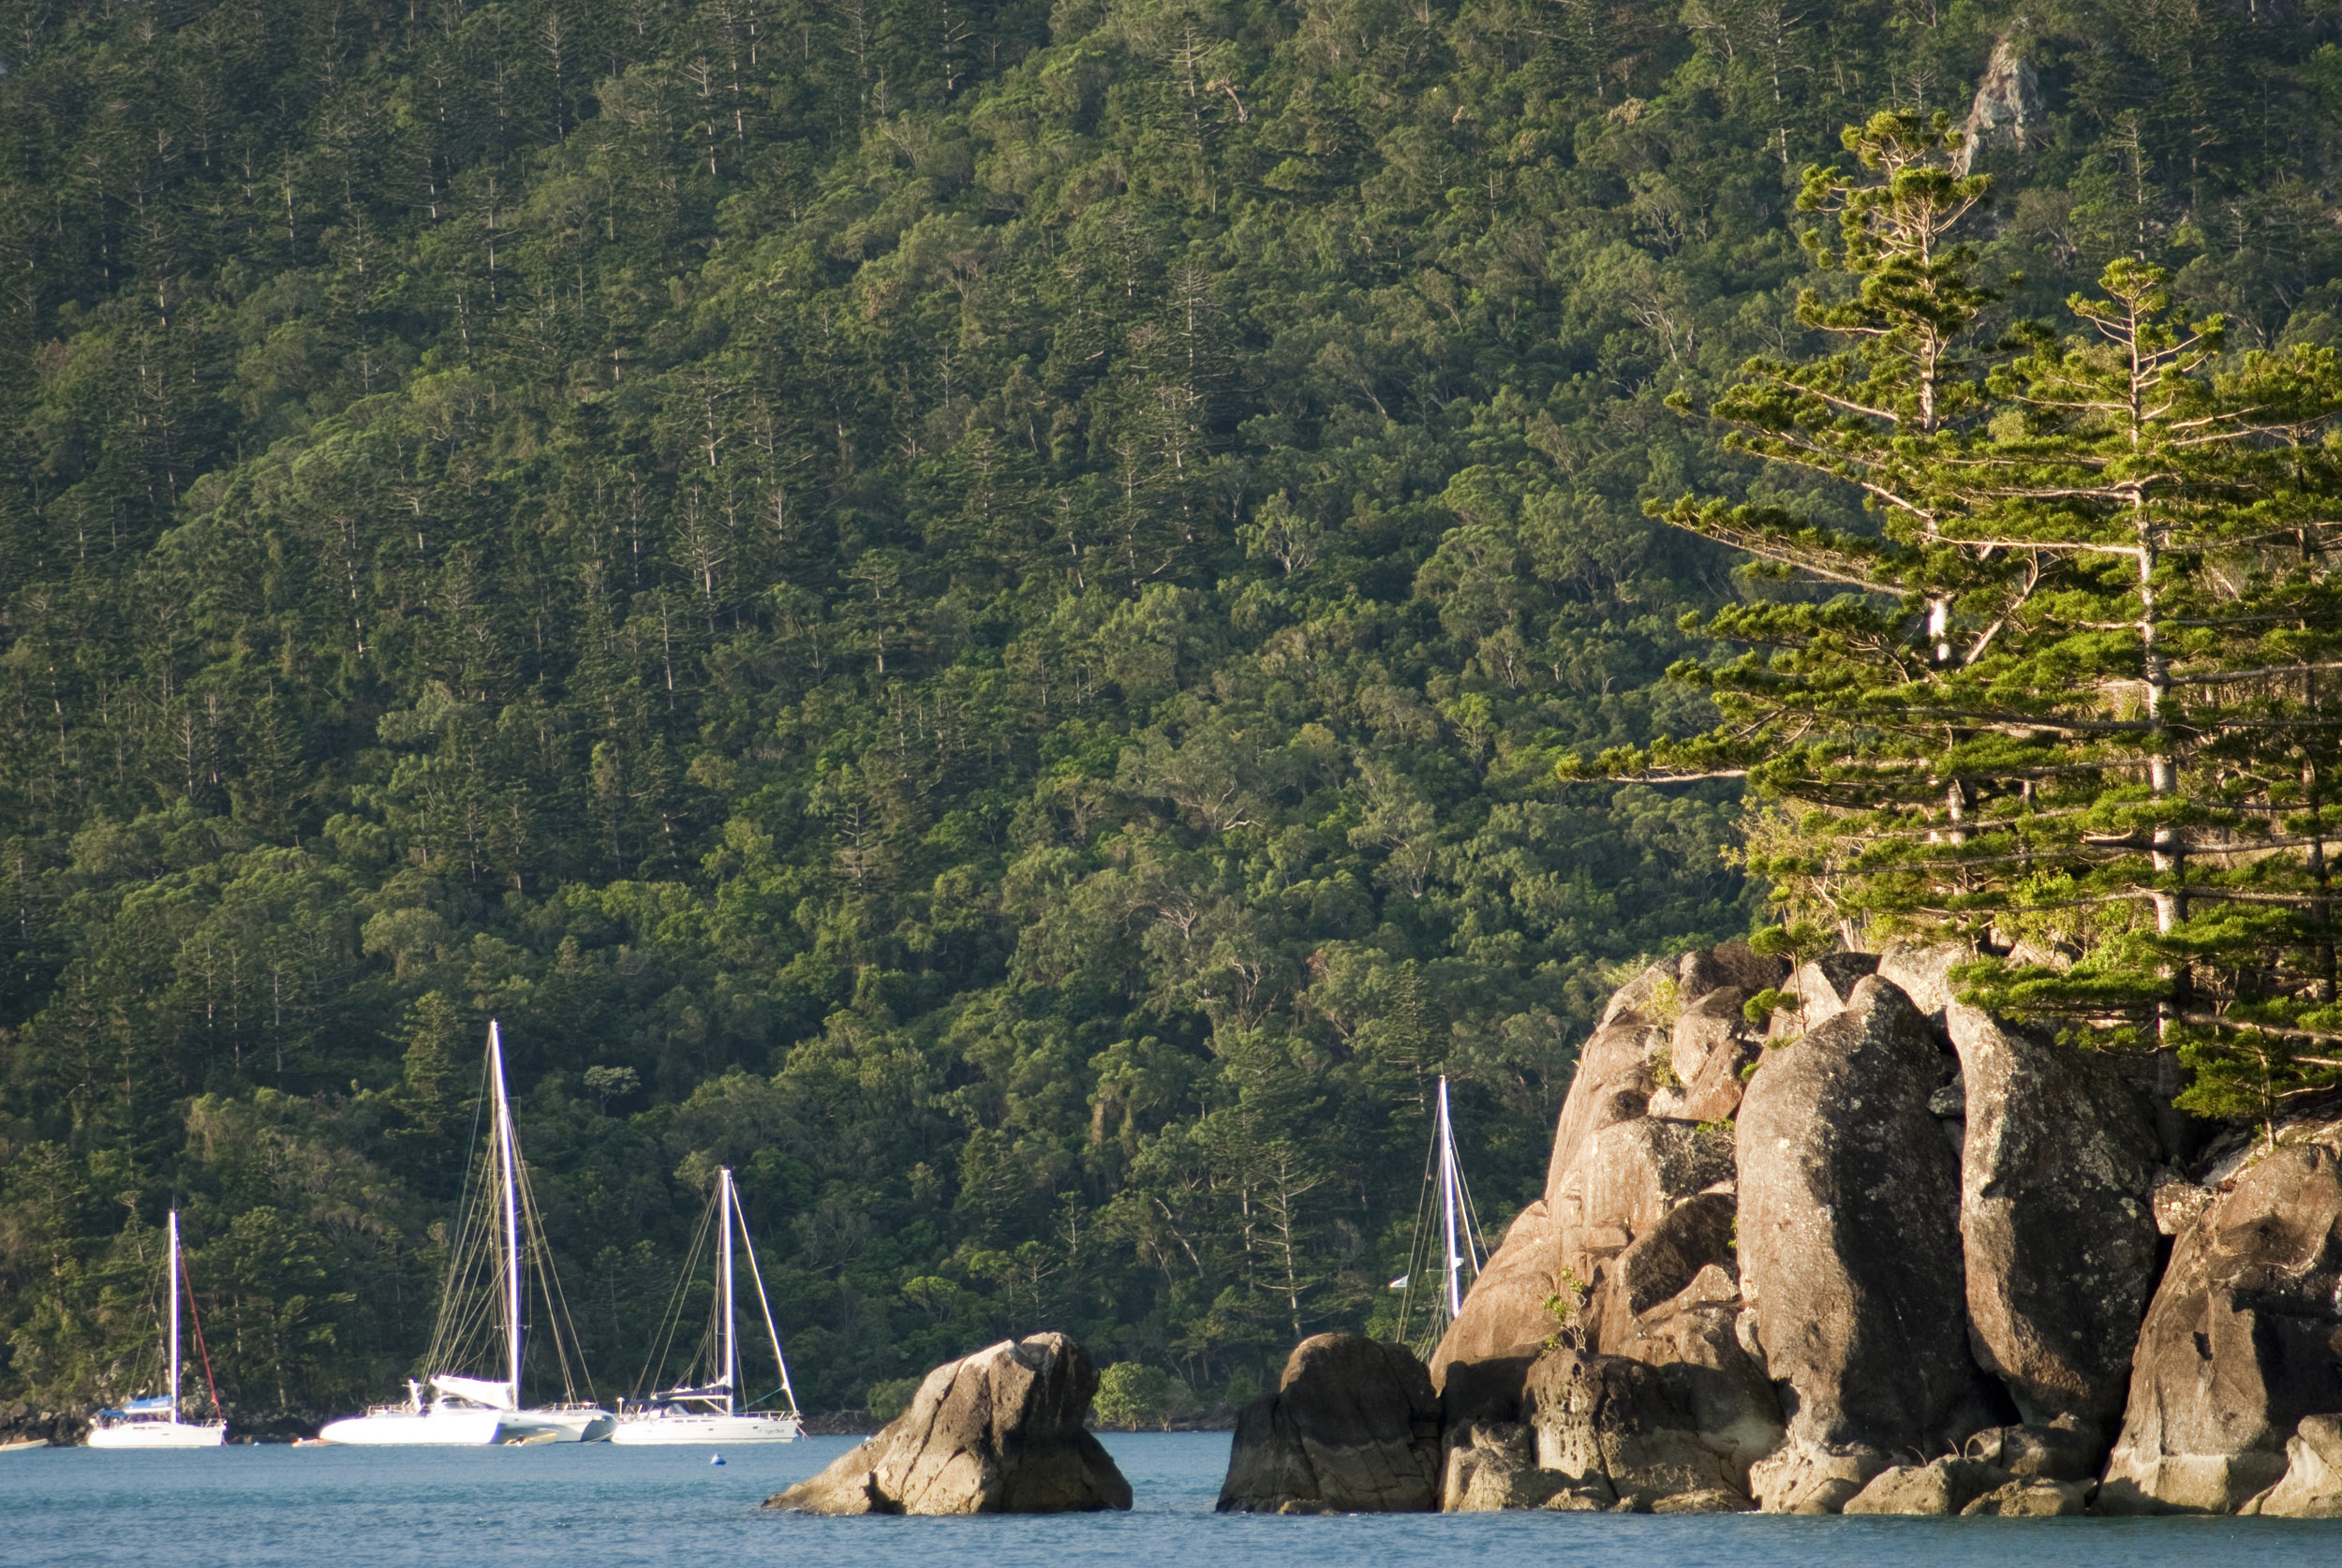 Yachts moored in a protected harbour surrounded by beautiful coastline and lush, rainforest covered mountains in the Whitsunday Islands, Australia.